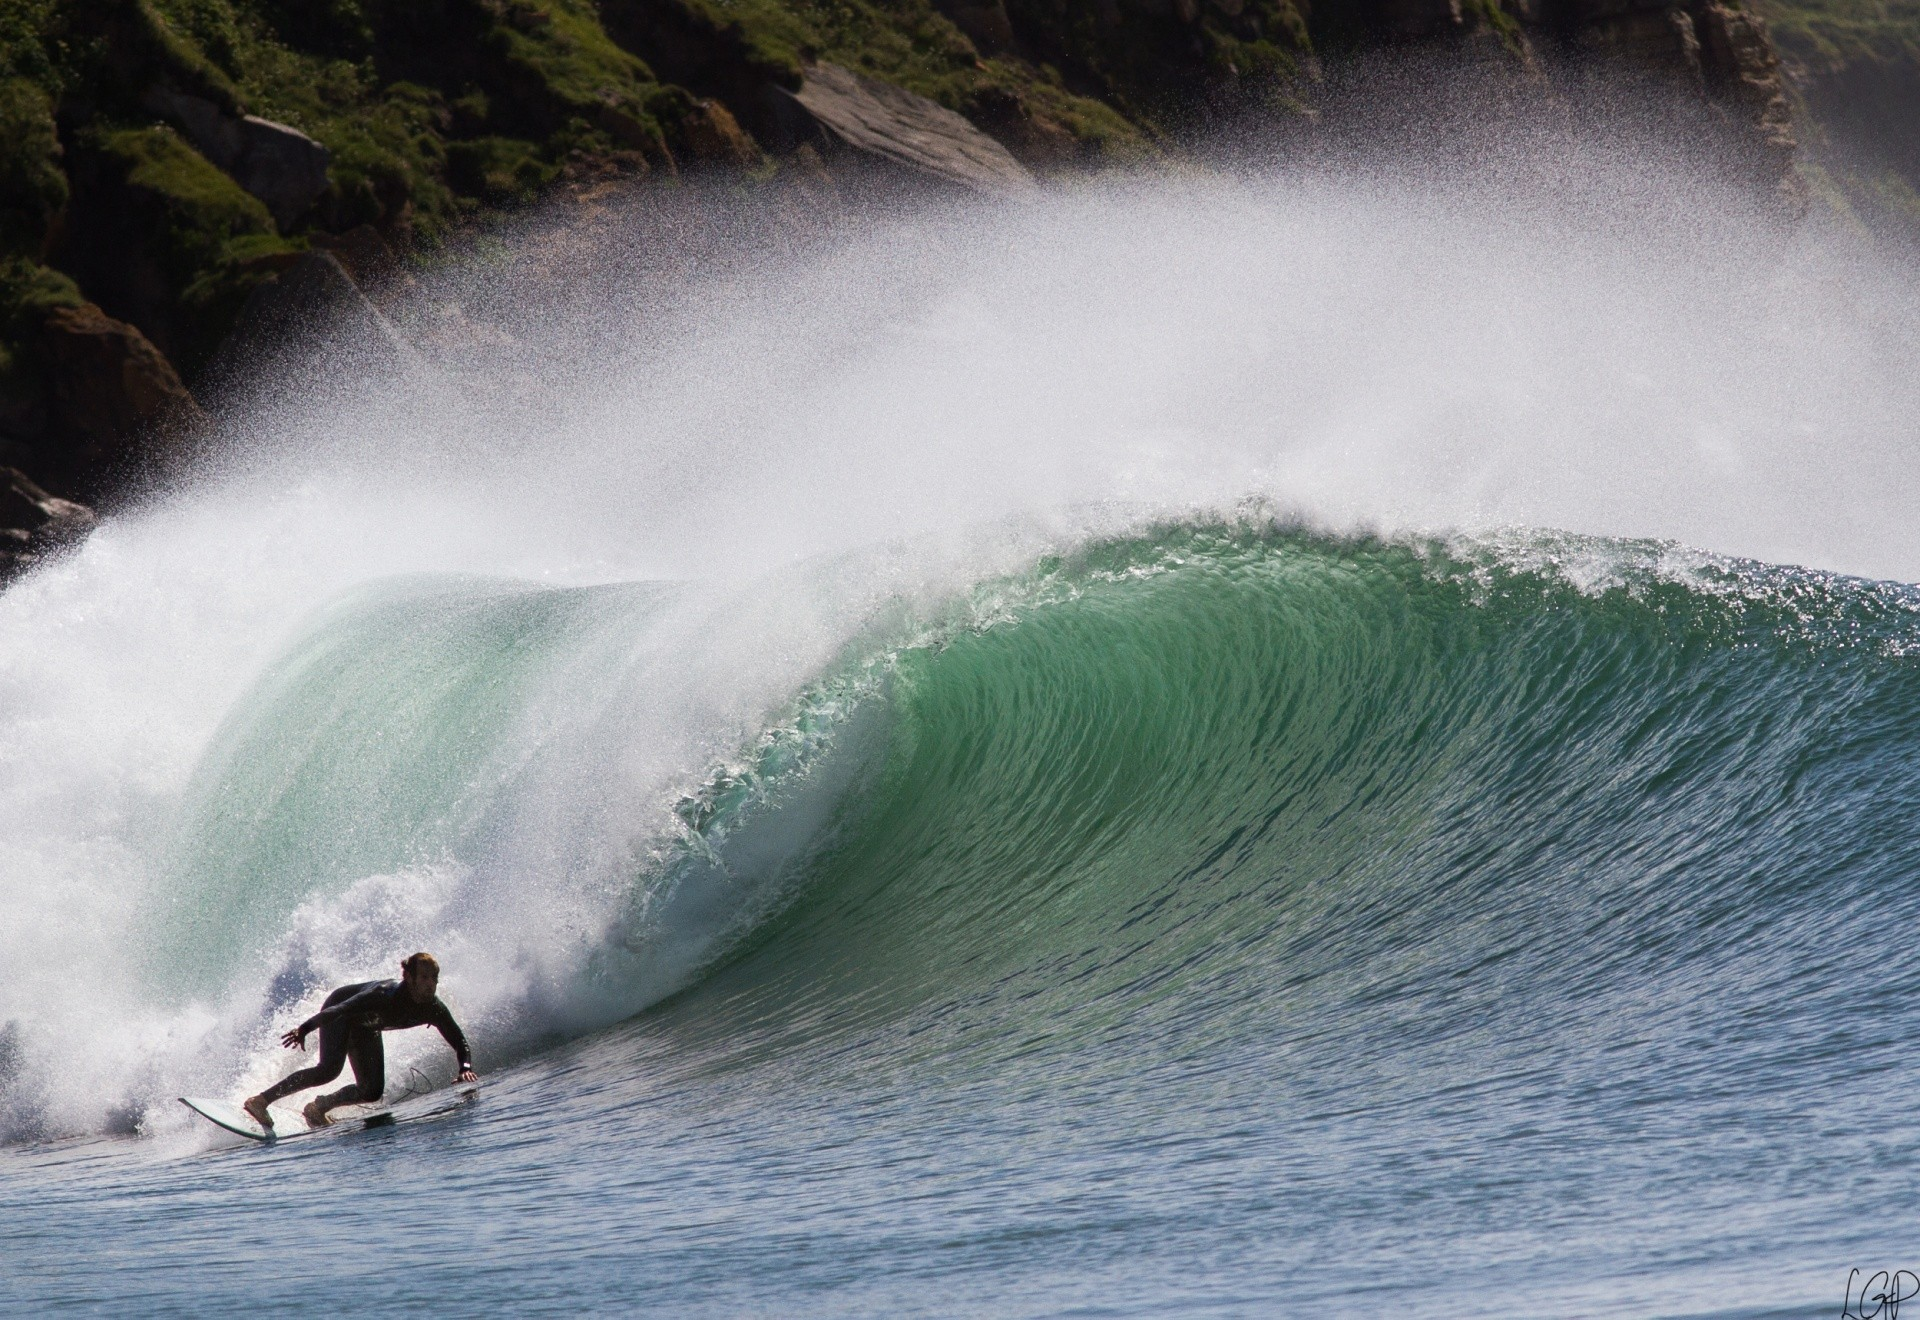 Luke Gartside's photo of Santander (El Sardinero)